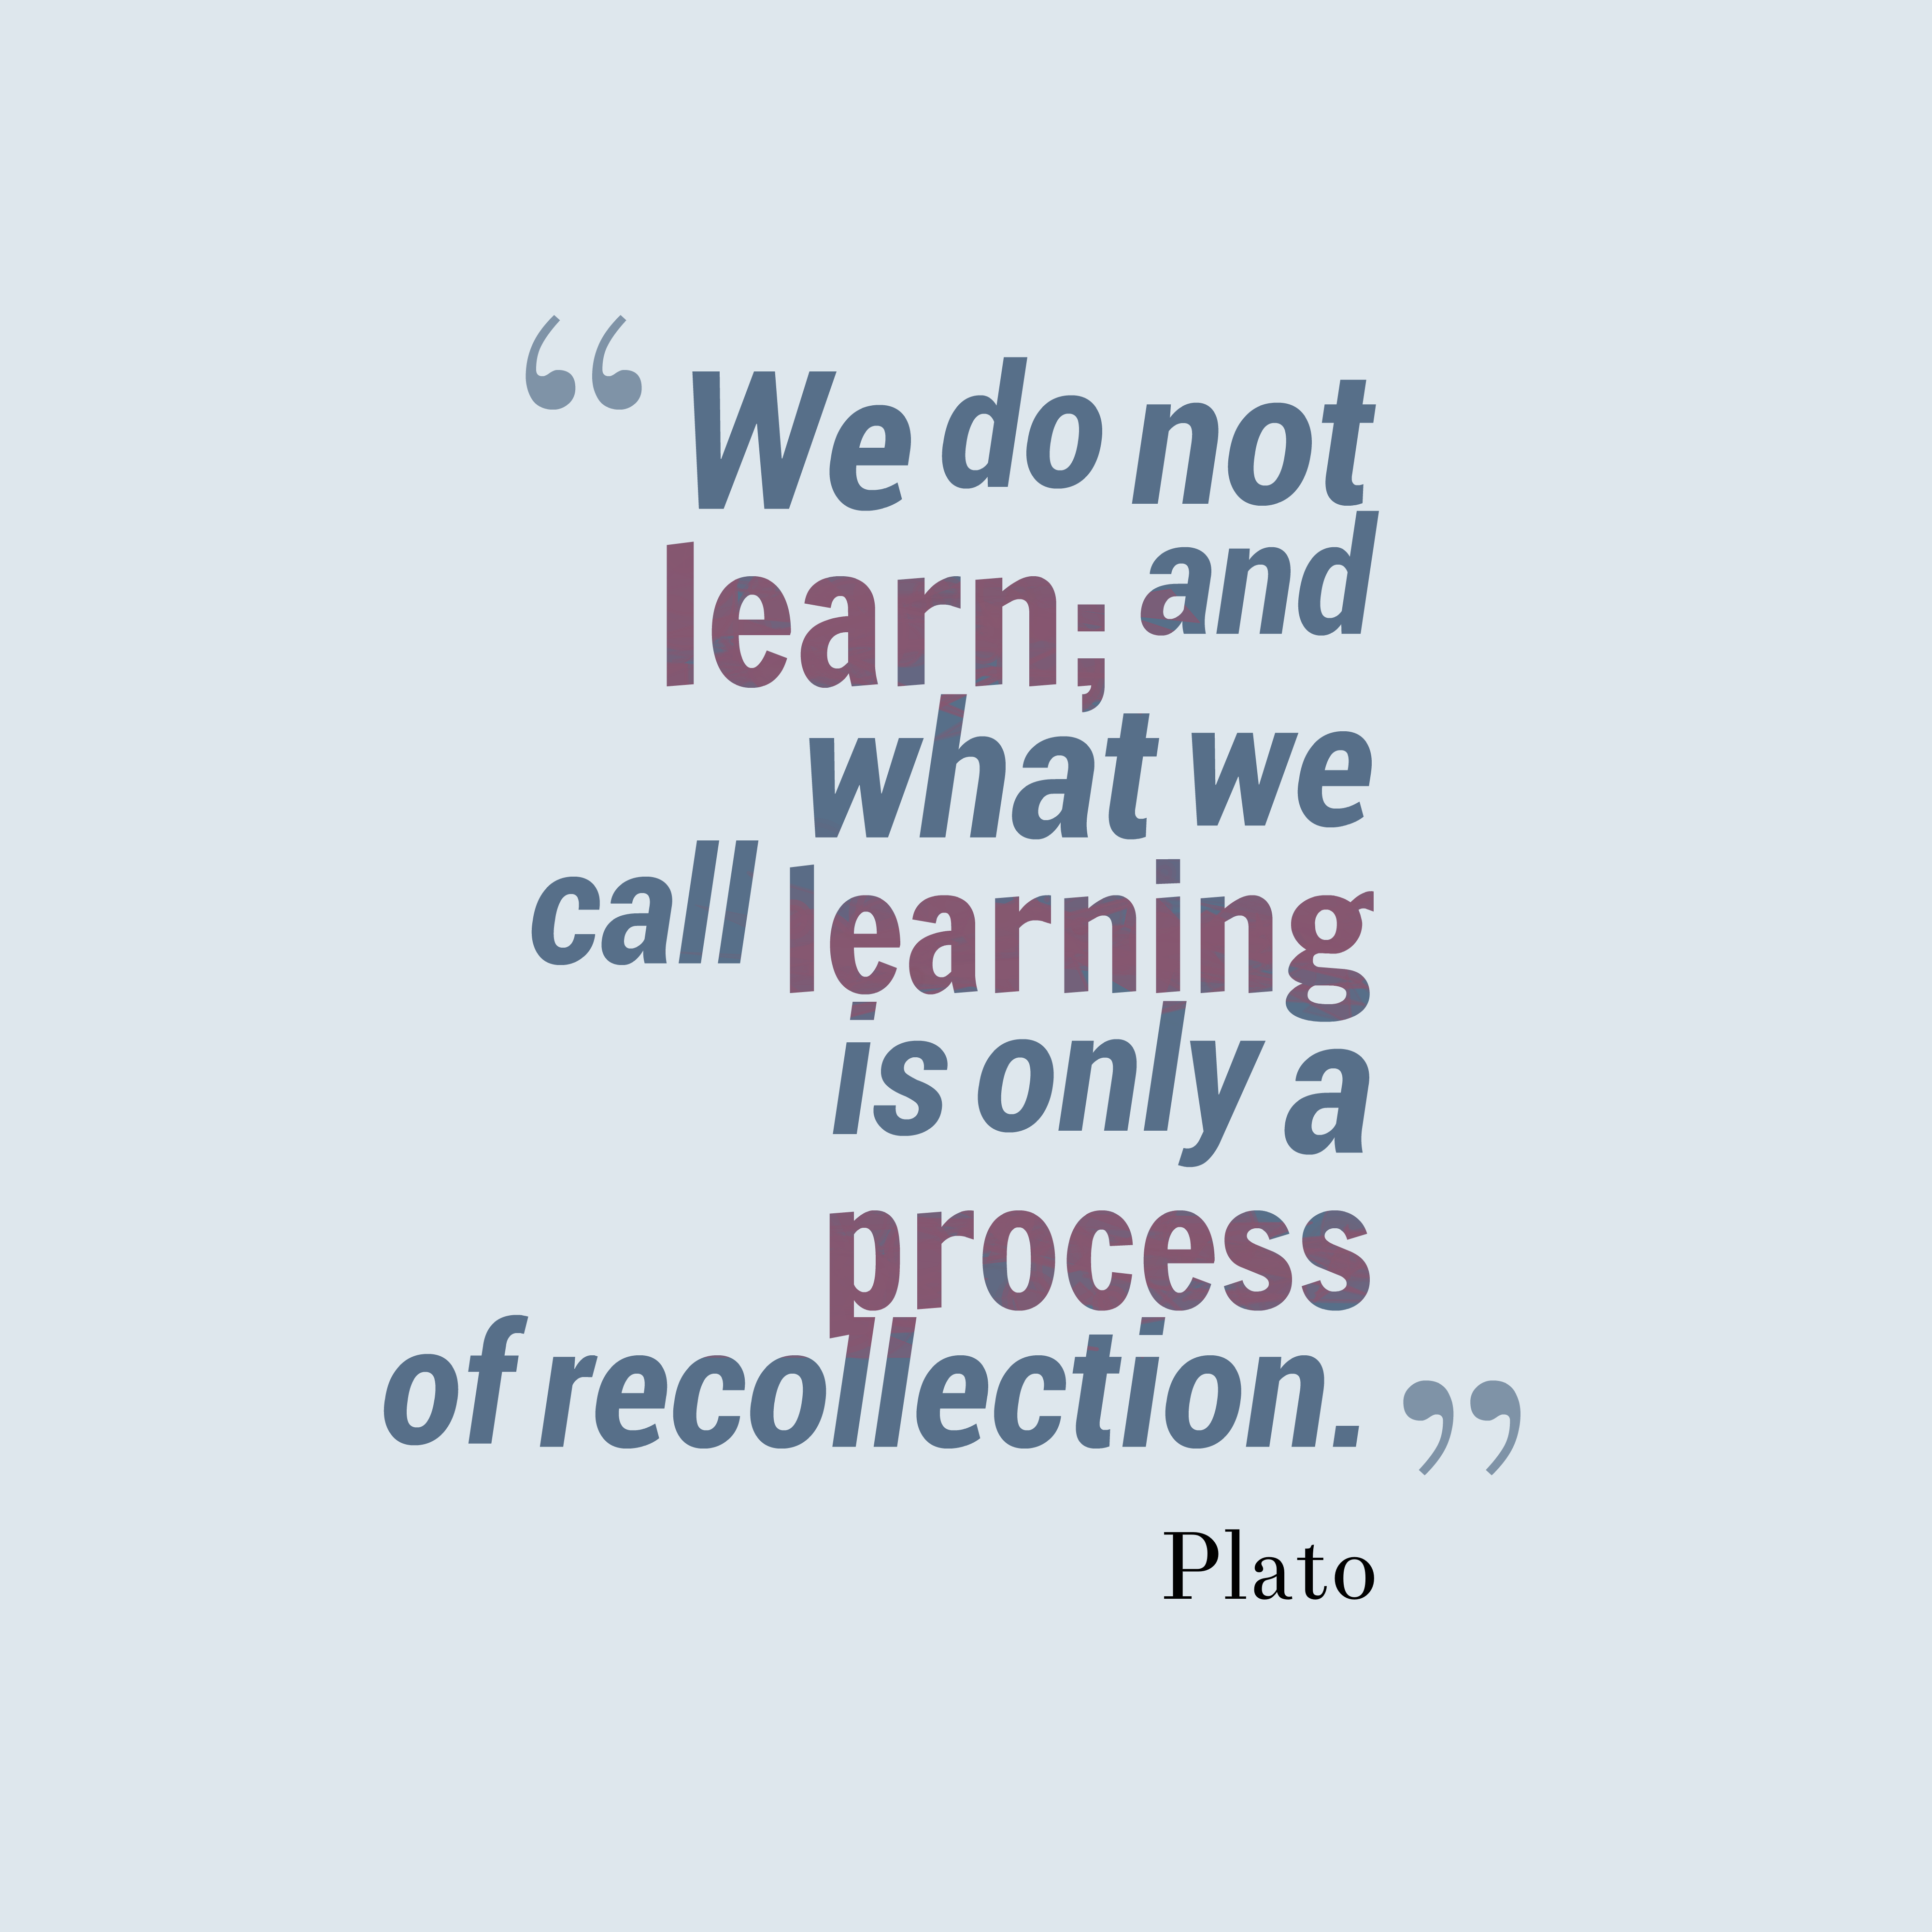 plato knowledge Top 10 plato quotes at brainyquote share the best quotes by plato with your friends and family.